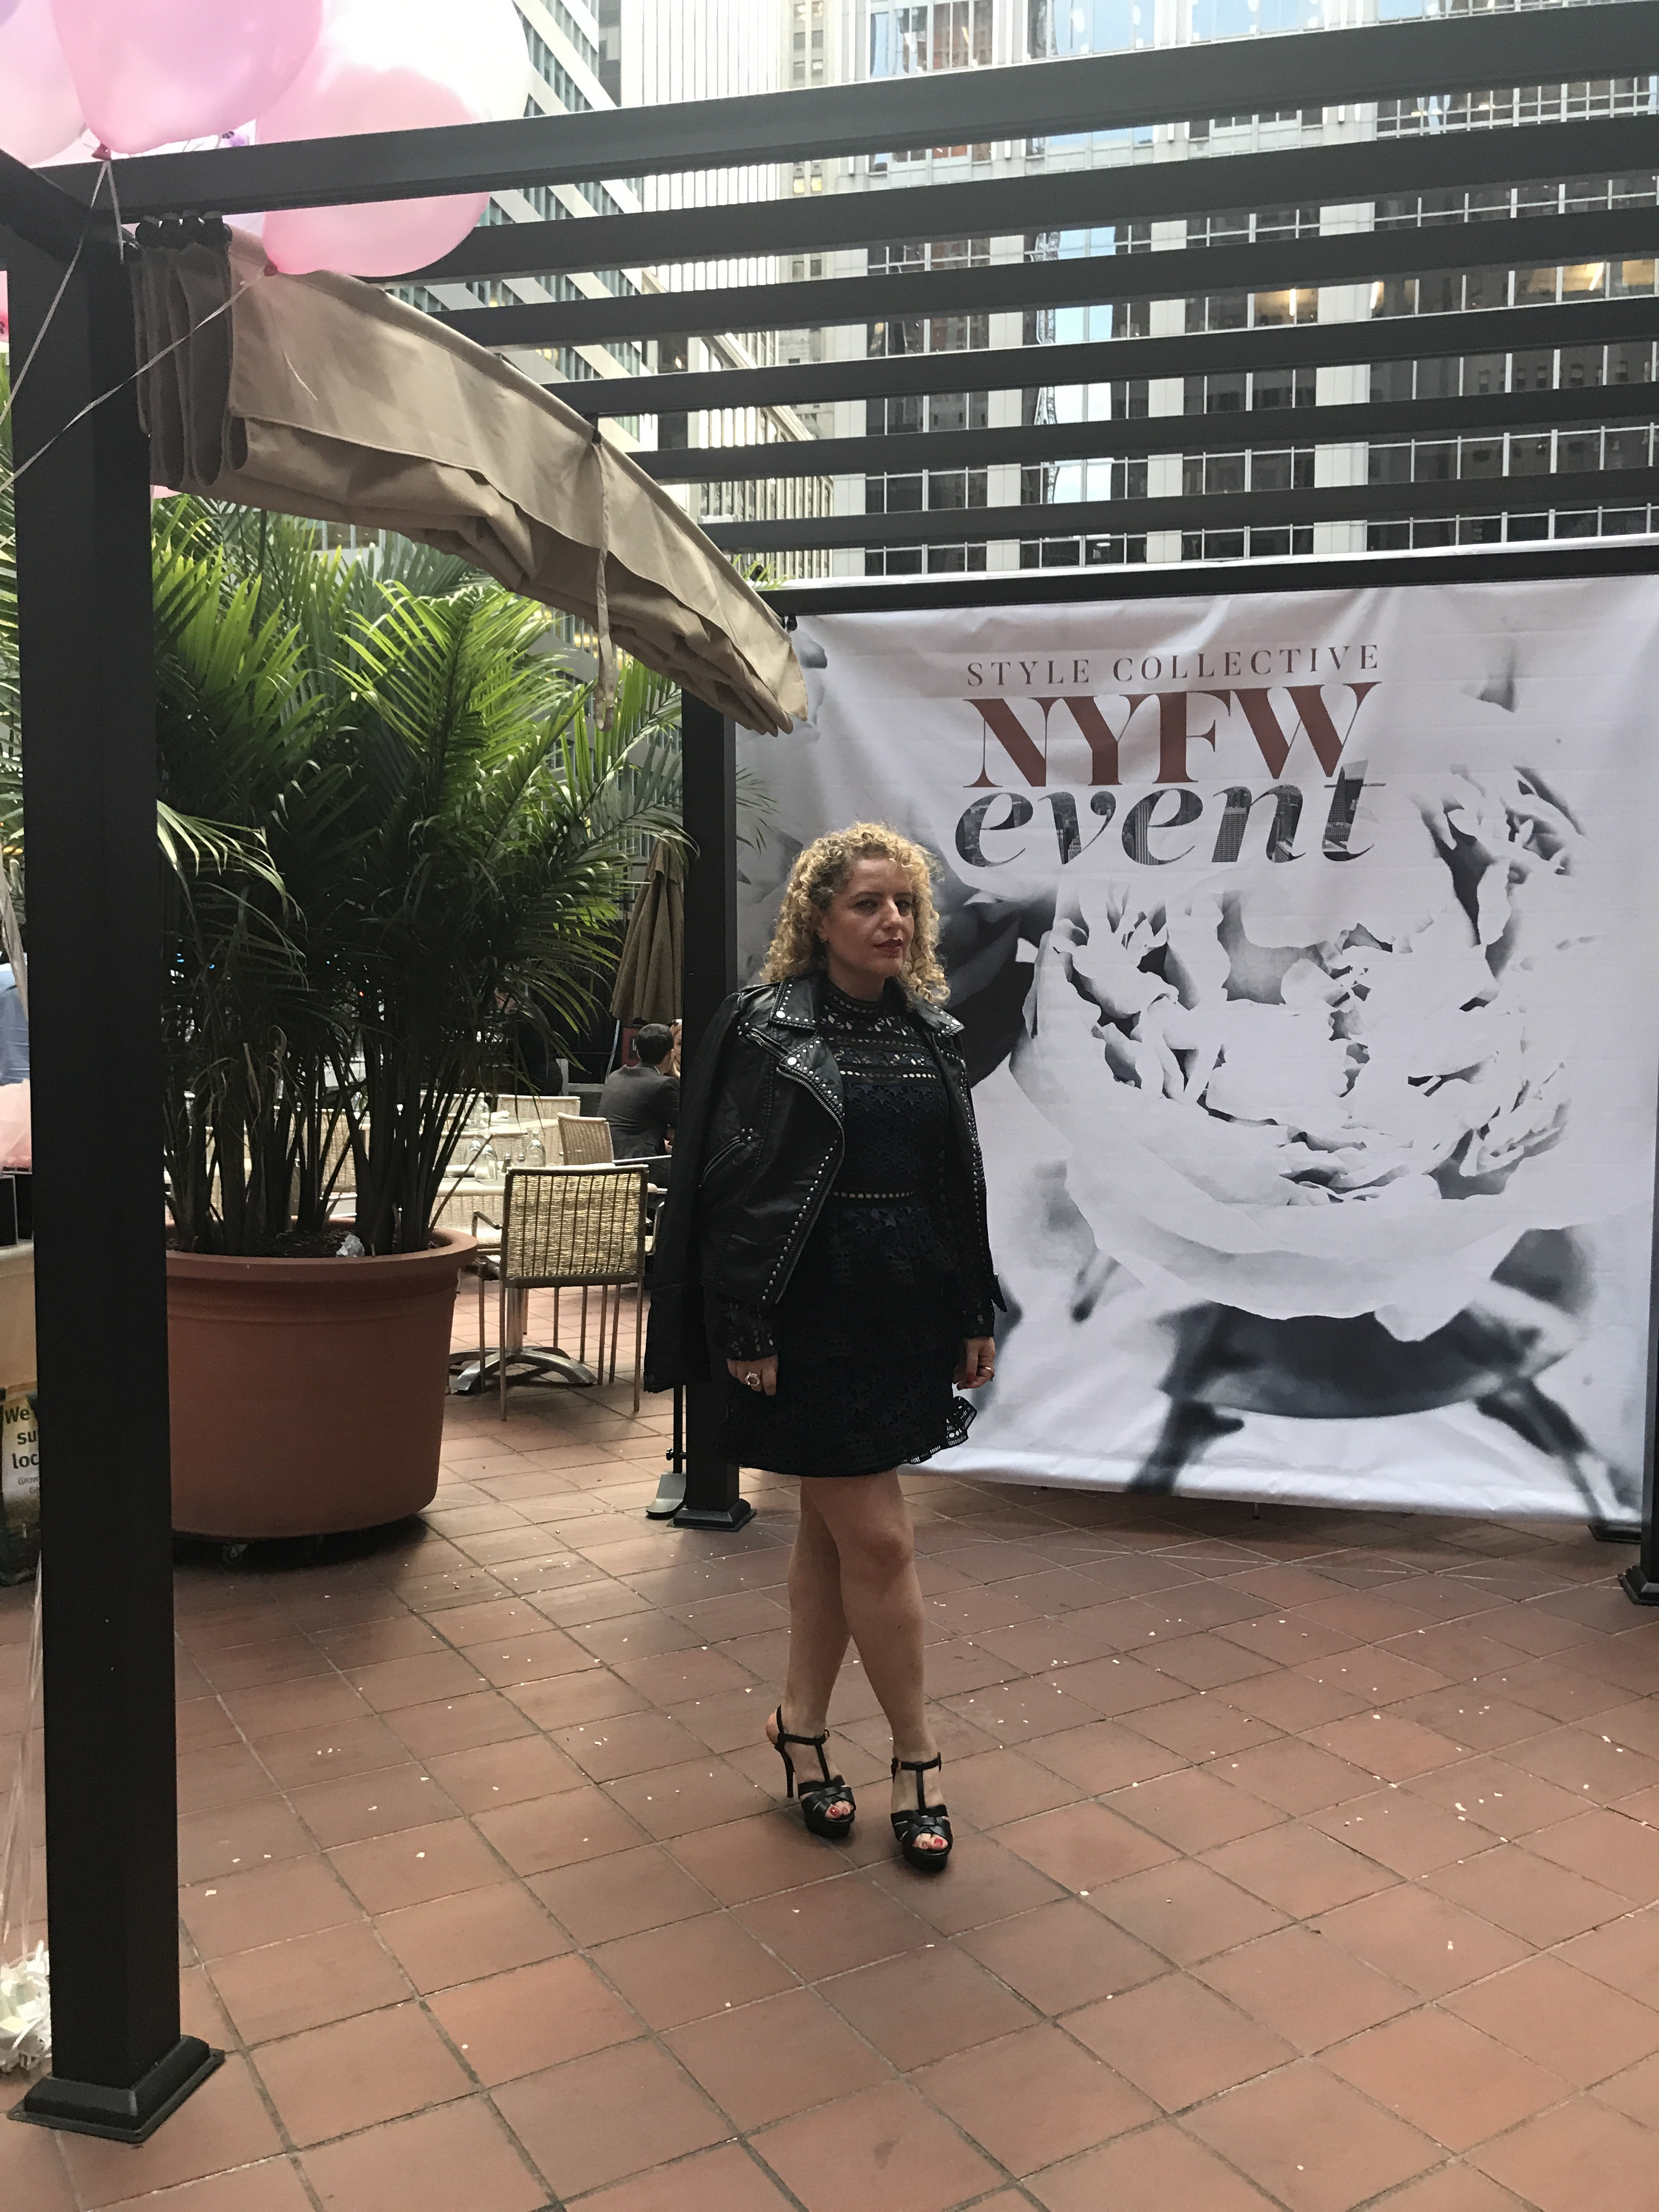 How to Get New York Fashion Show Invites